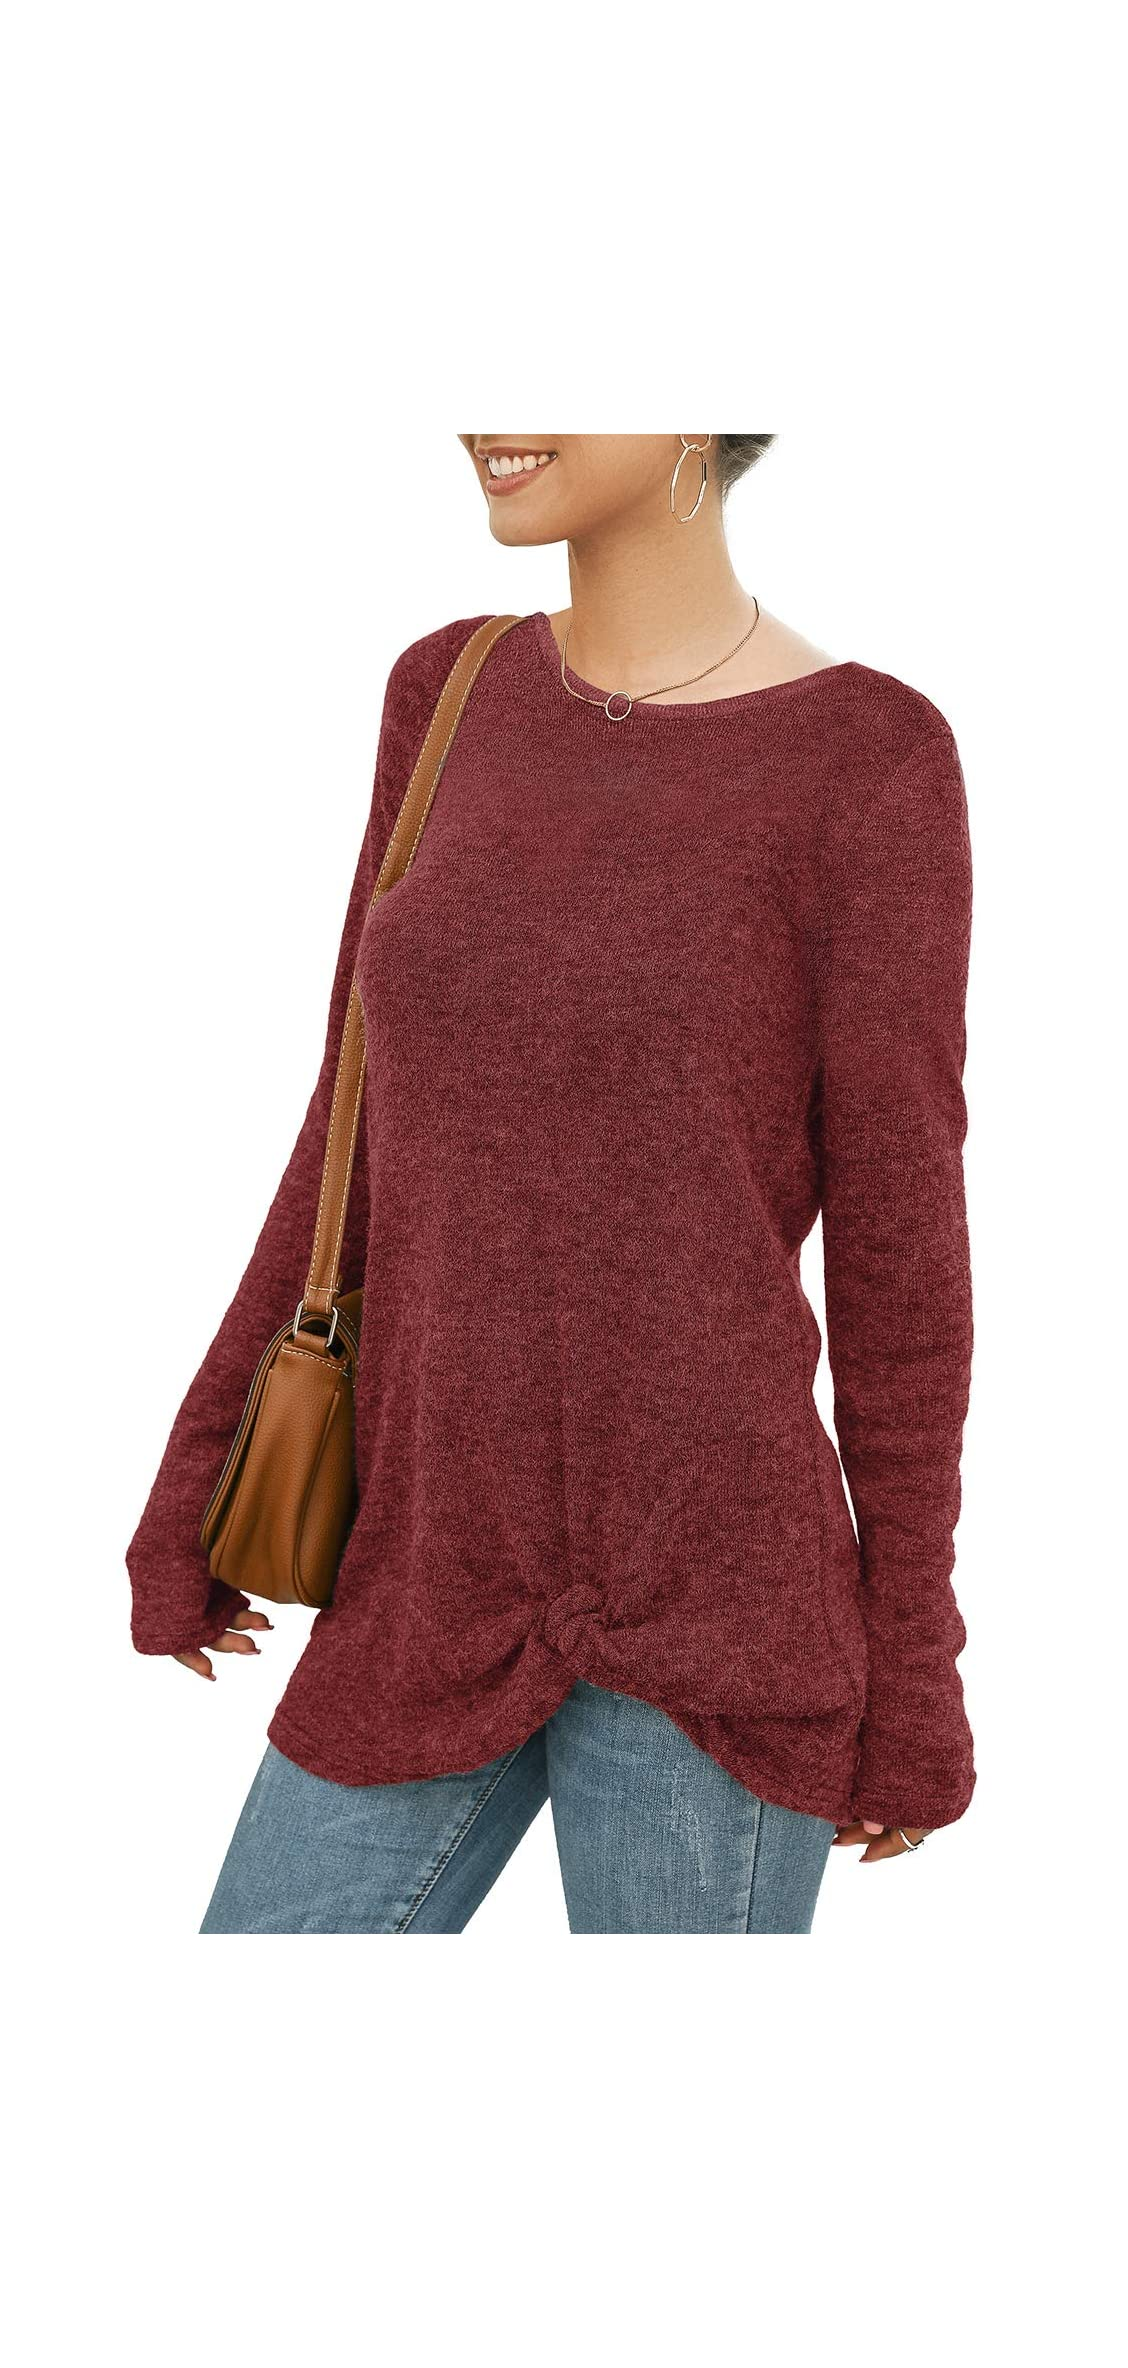 Women's Loose Solid Color Blouses Long Sleeve Pullover